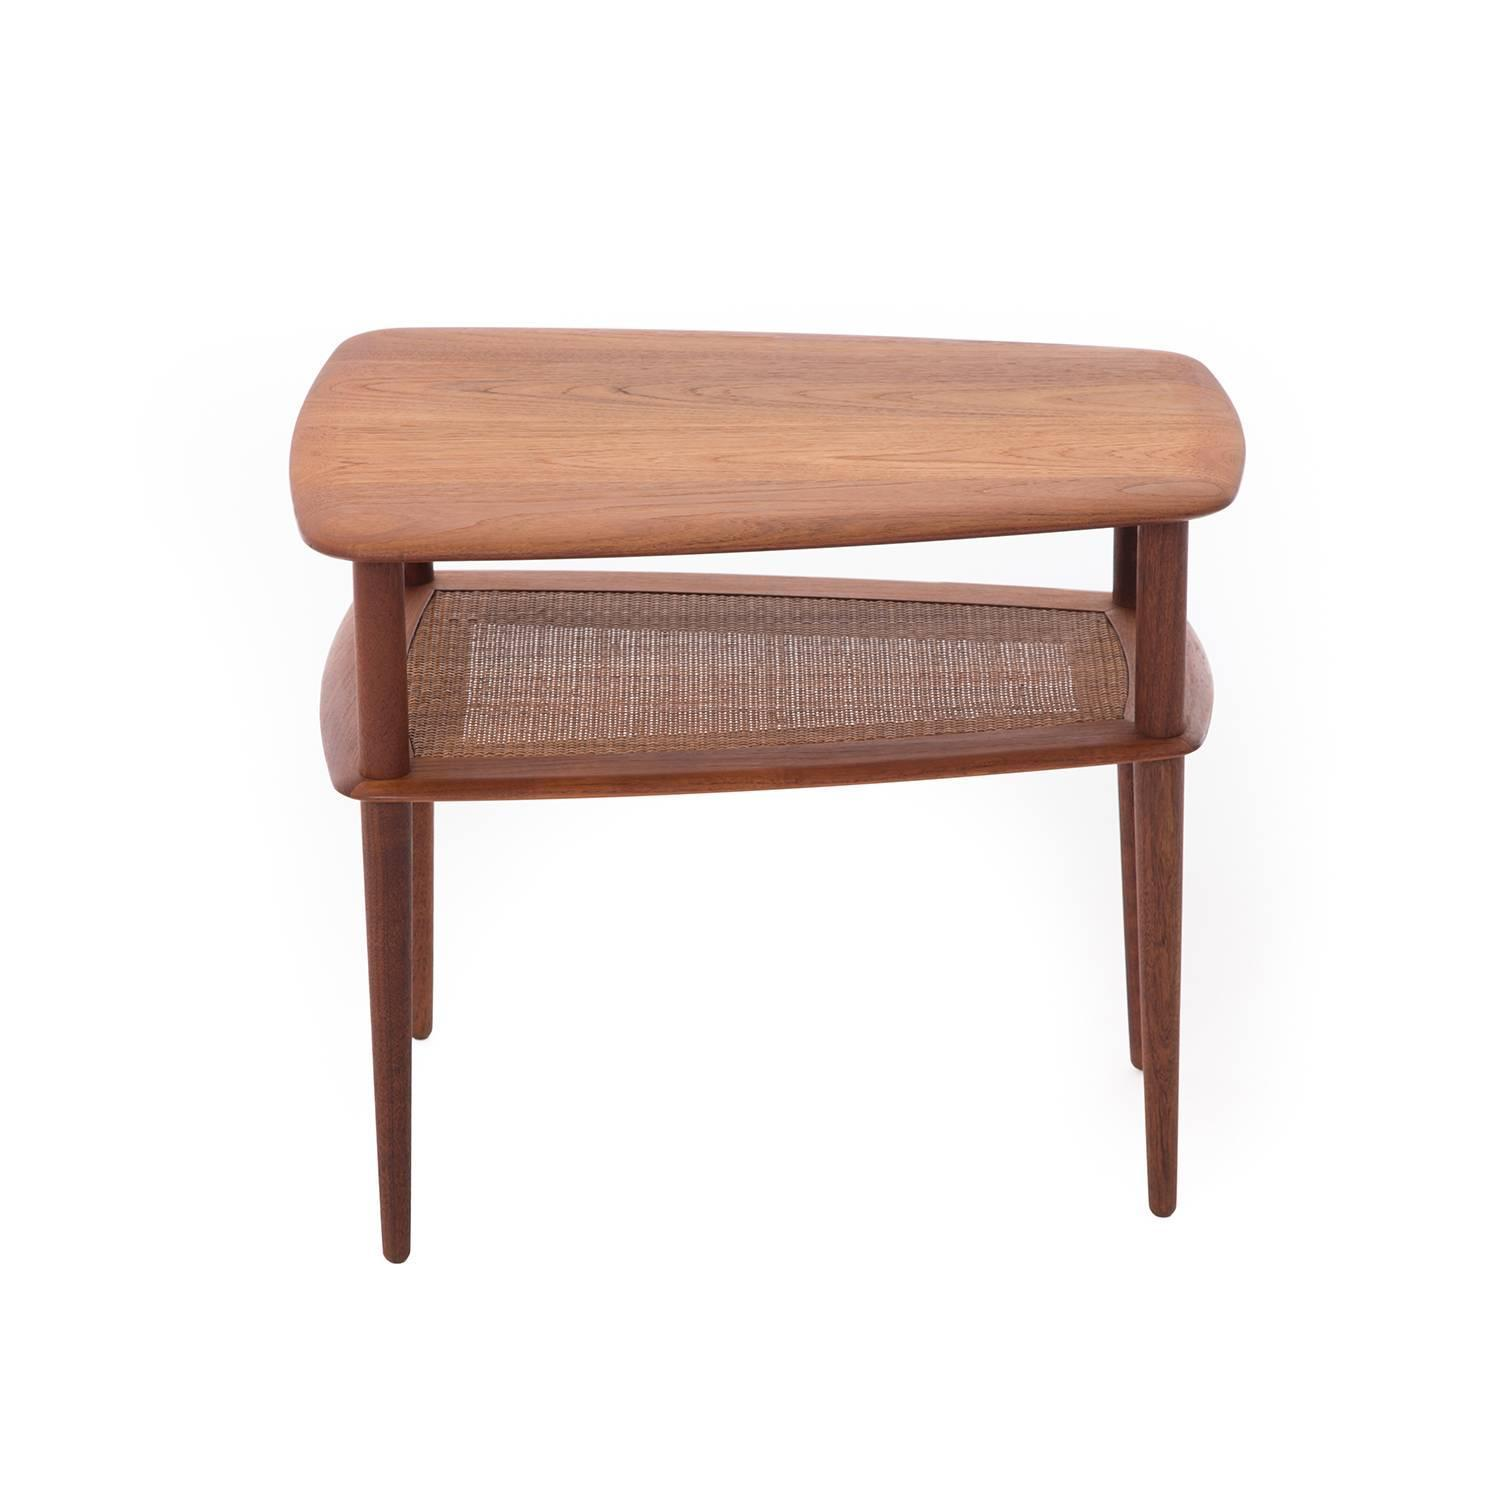 Danish modern coffee table with shelf for sale at 1stdibs for Modern coffee table for sale